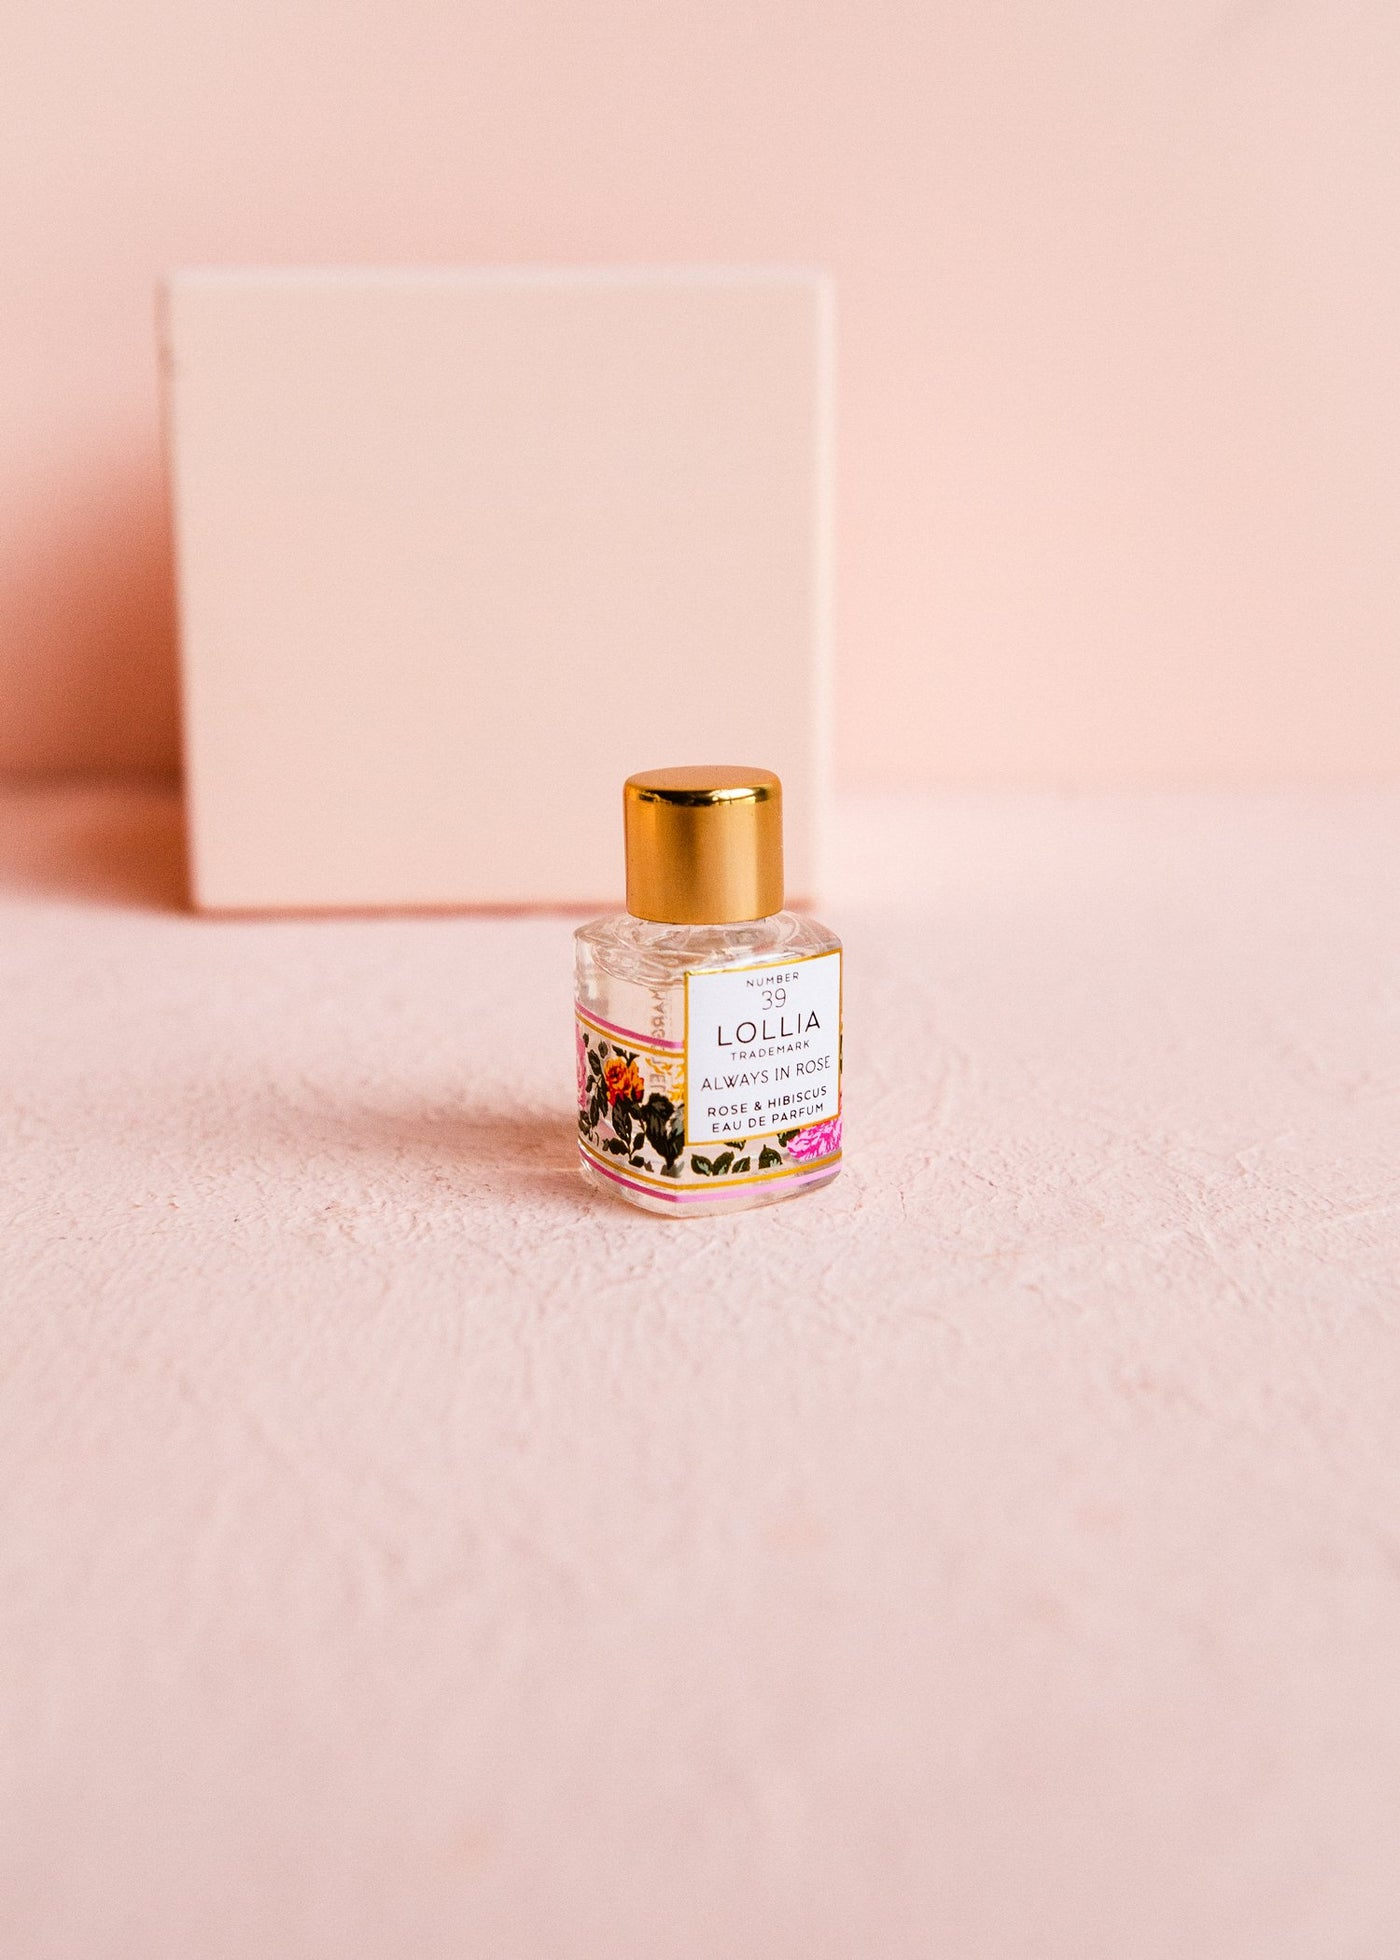 Always in Rose Little Luxe Eau de Parfum